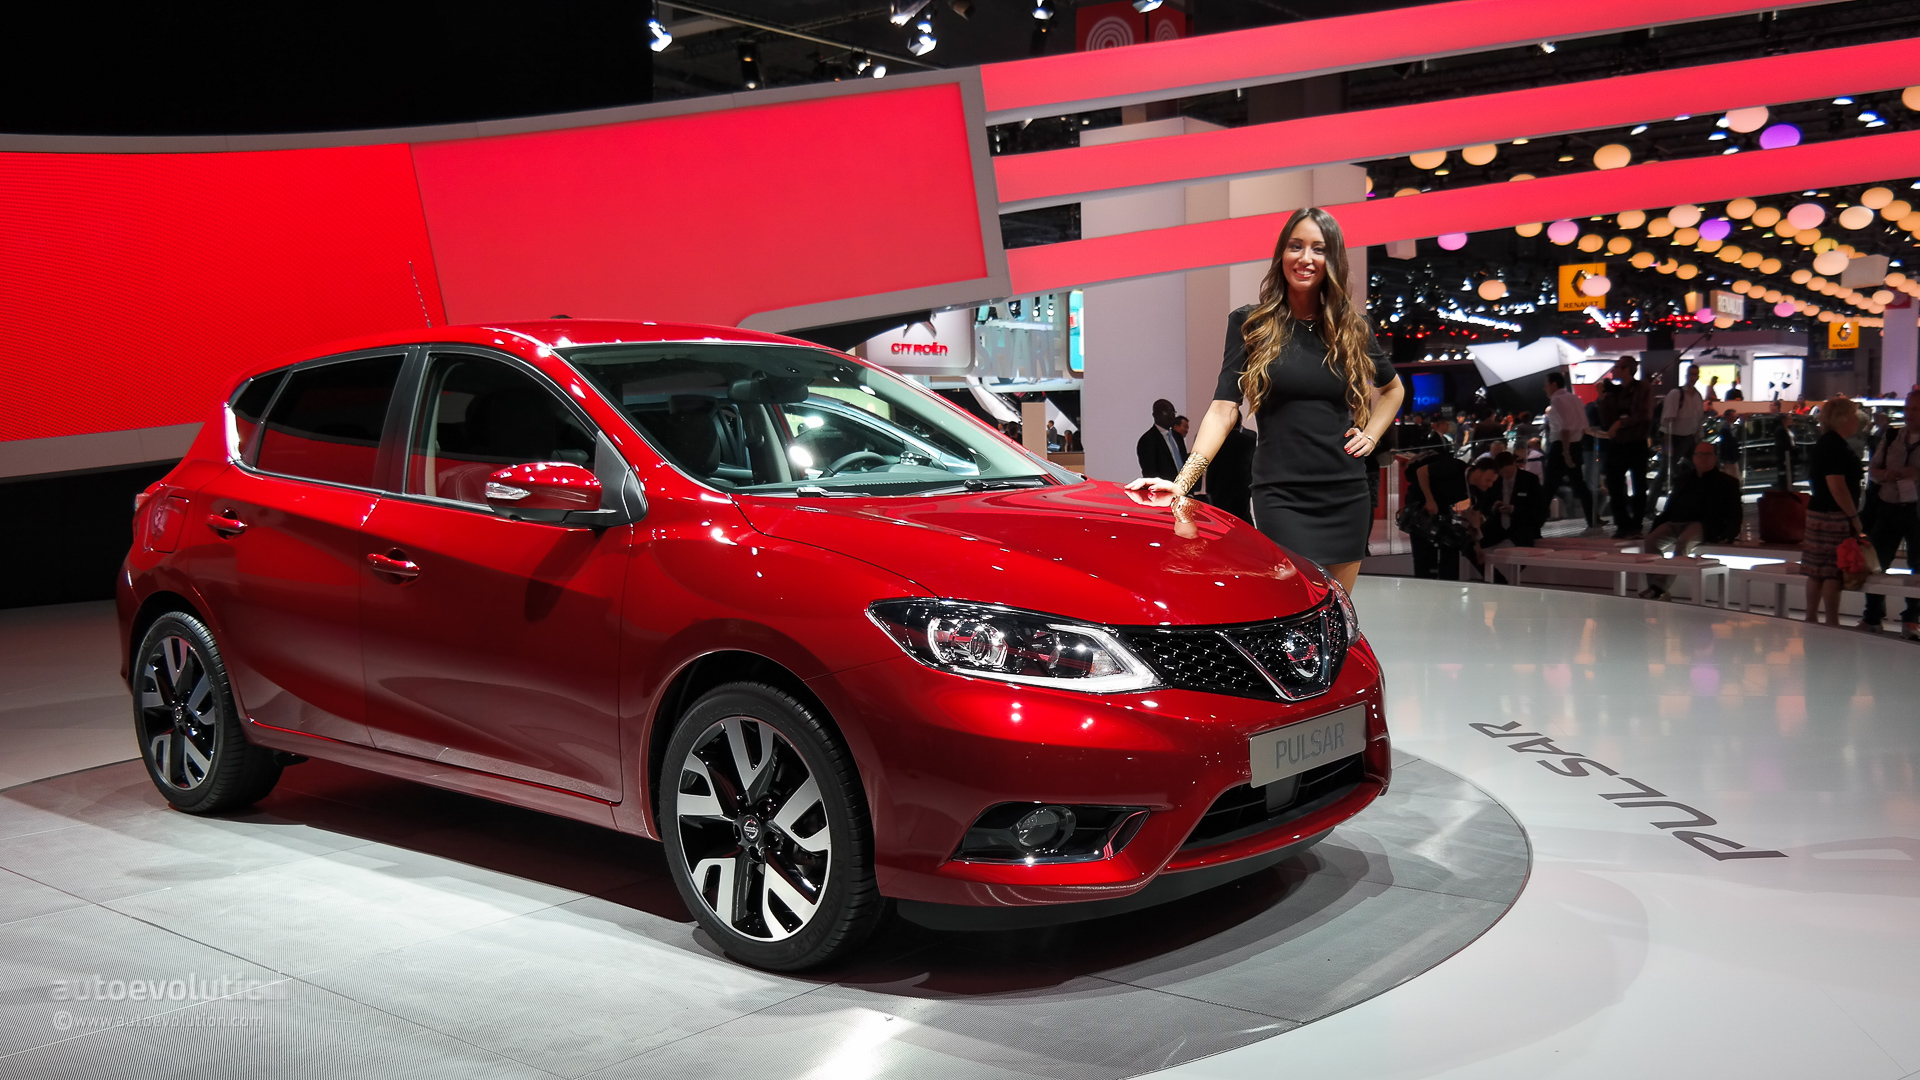 Nissan Pulsar Hatchback Discontinued From European Lineup